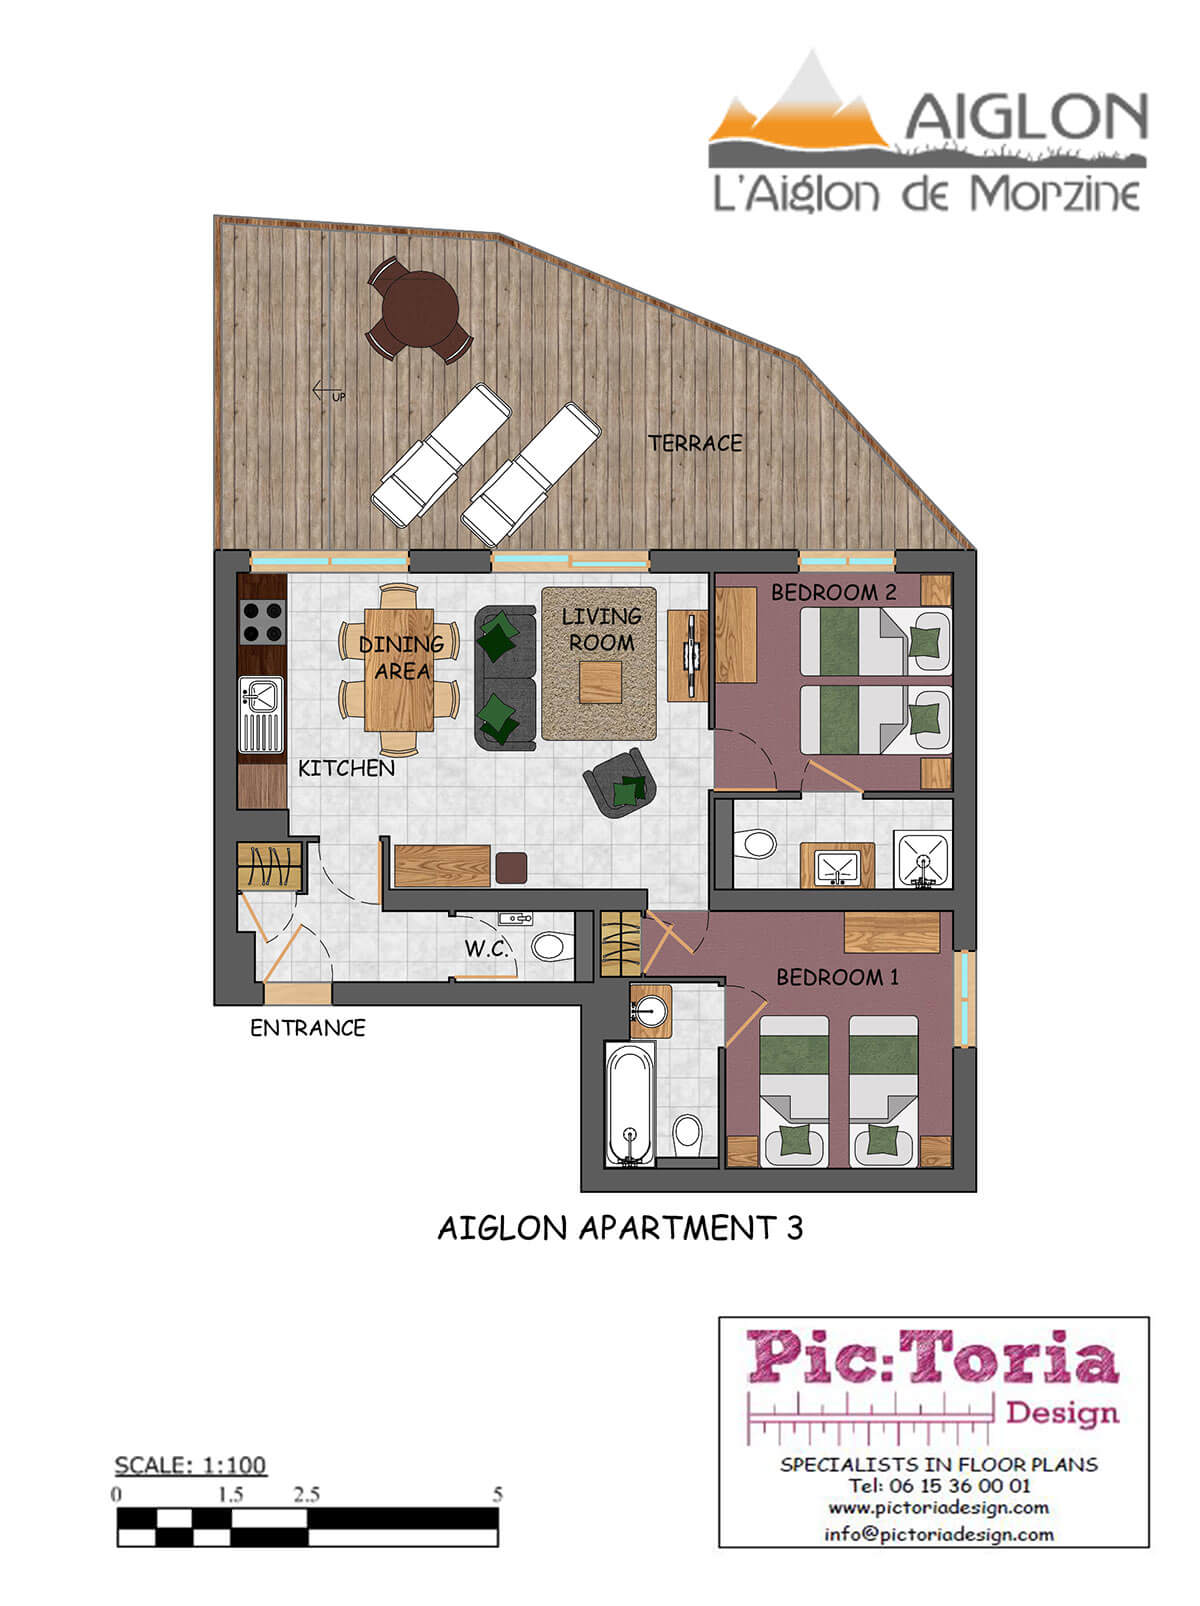 Image of Aiglon Image of Morzine Self Catered Apartment #3 floor plan